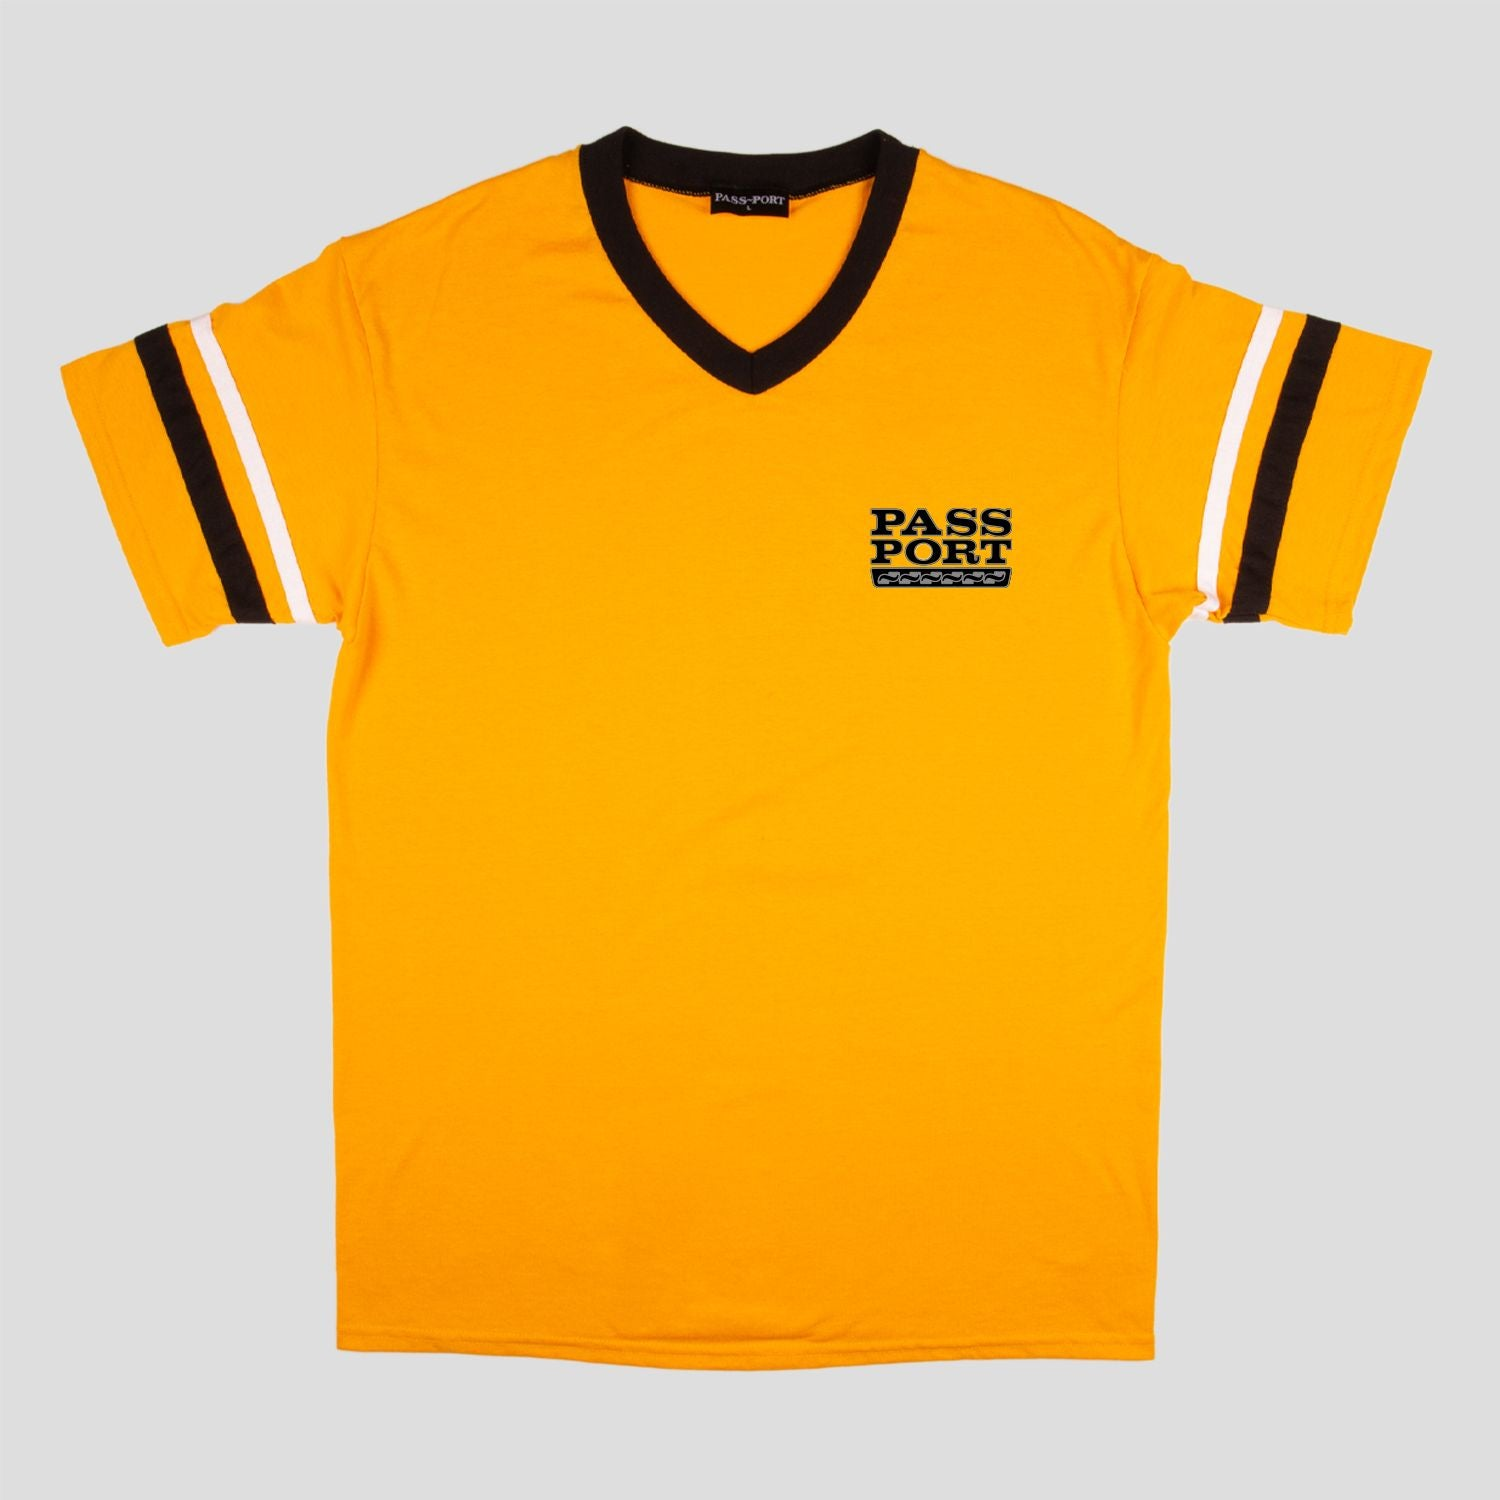 Auto Stripes Jersey (Gold/Black)